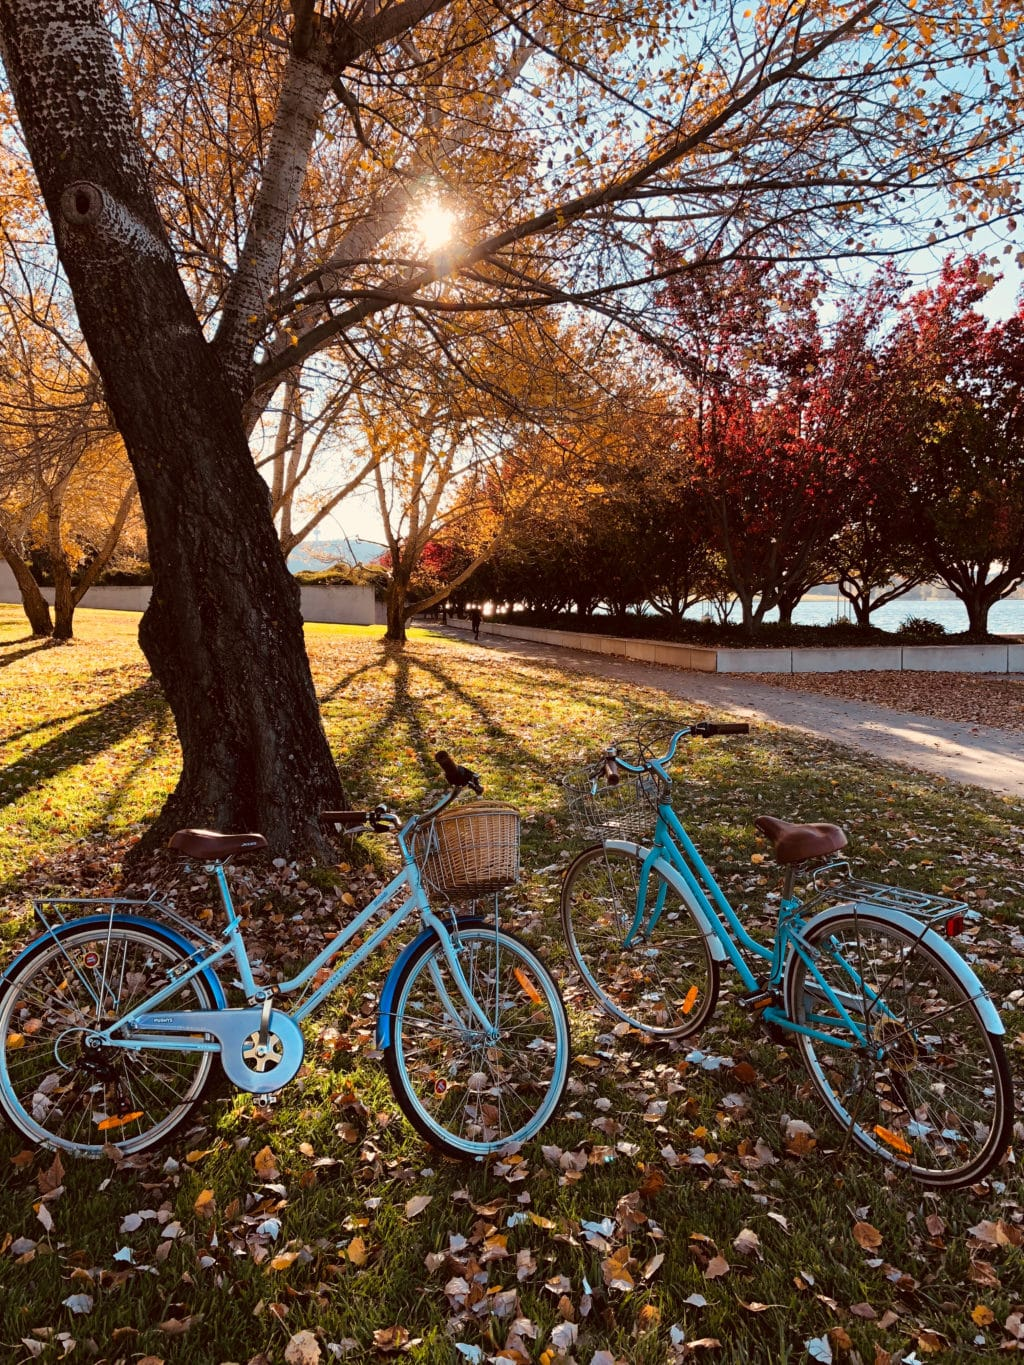 Two bright blue bikes sitting in a park next to a tree with full autumn colors. - a Thanksgiving treat!